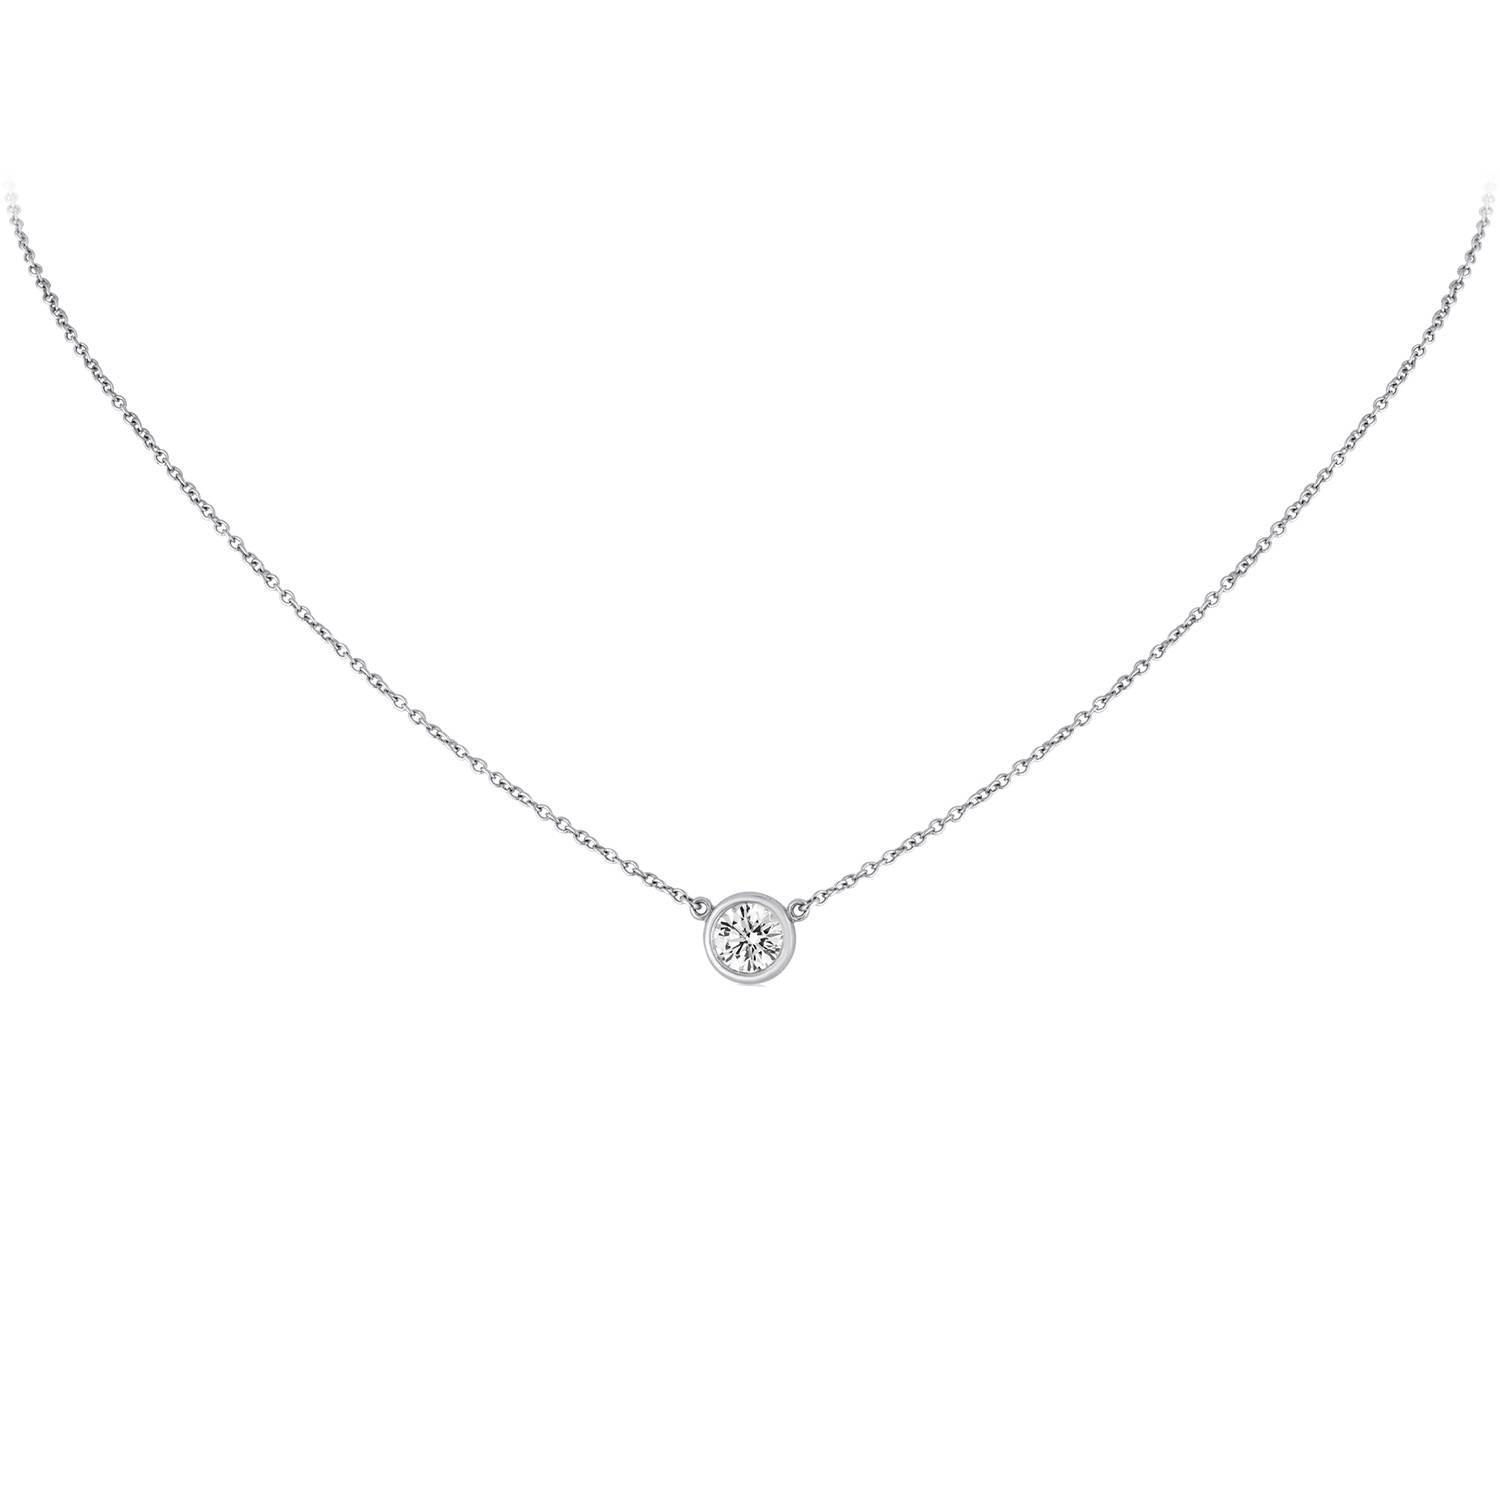 edwards solitaire in diamond chain rolo davies set product a pendant gold on necklace bezel white